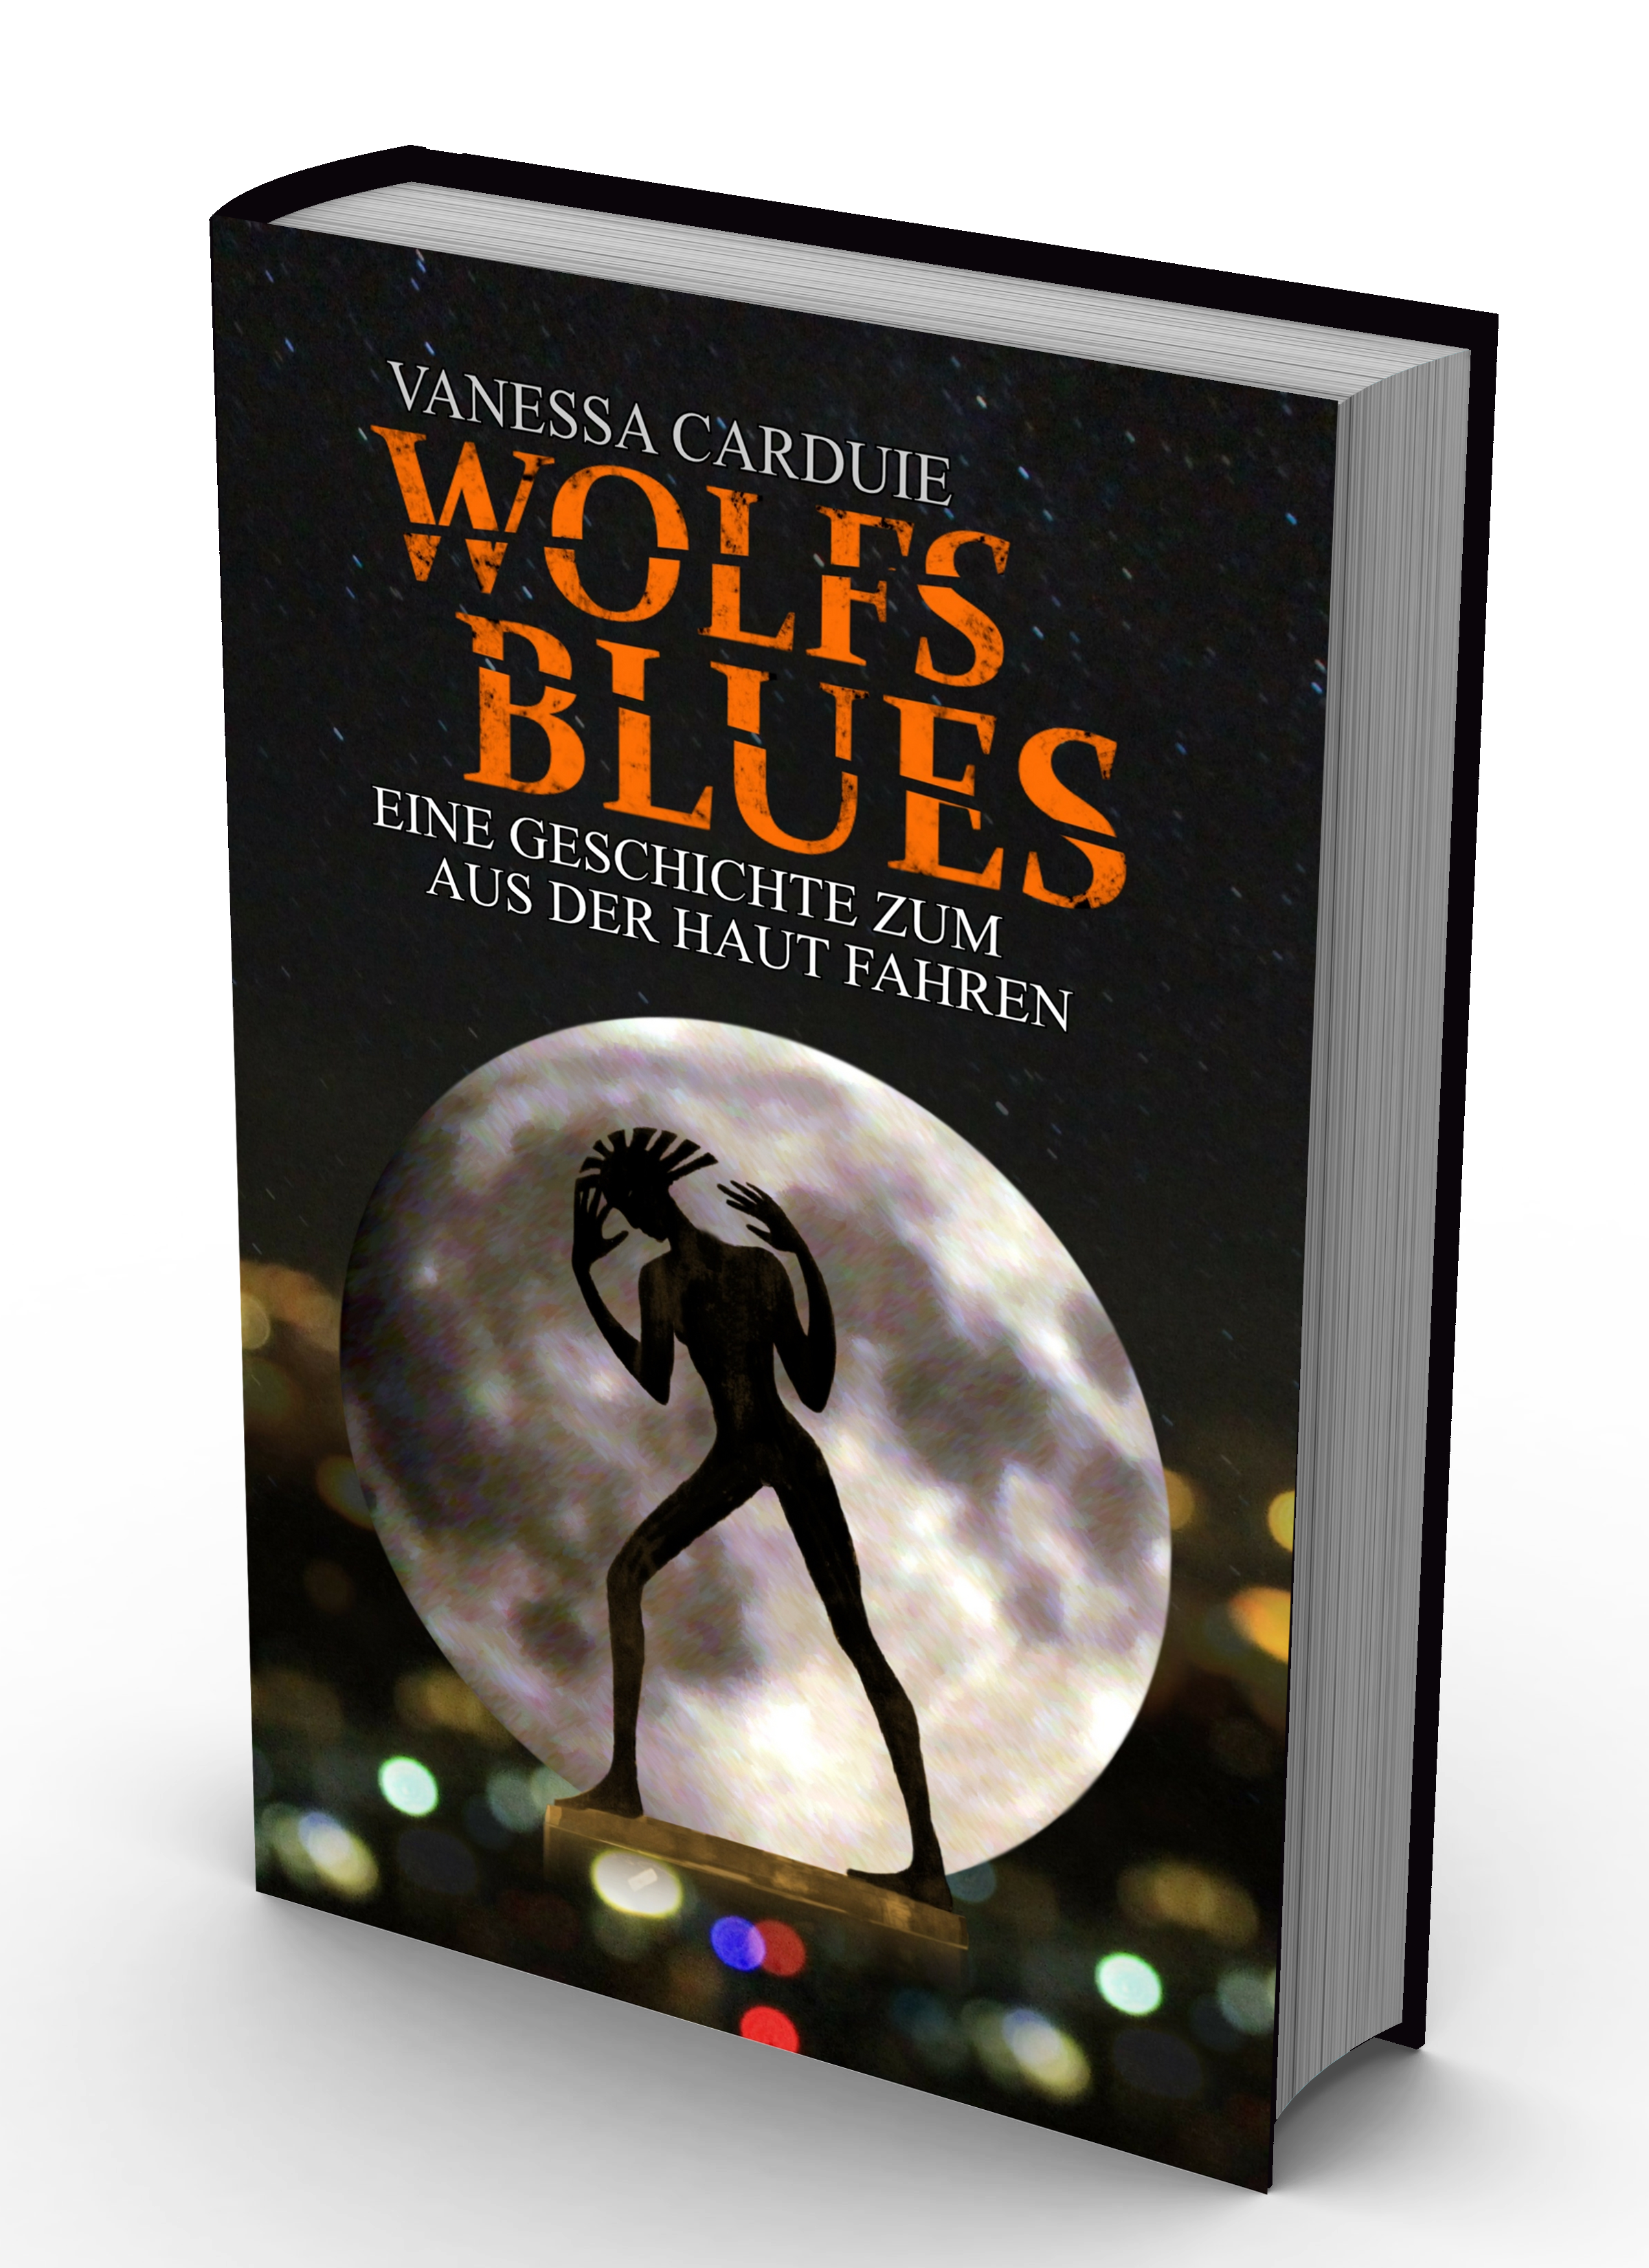 //www.vanessa-carduie.com/wp-content/uploads/07_book-Wolfsblues-1-e1563230268866.png